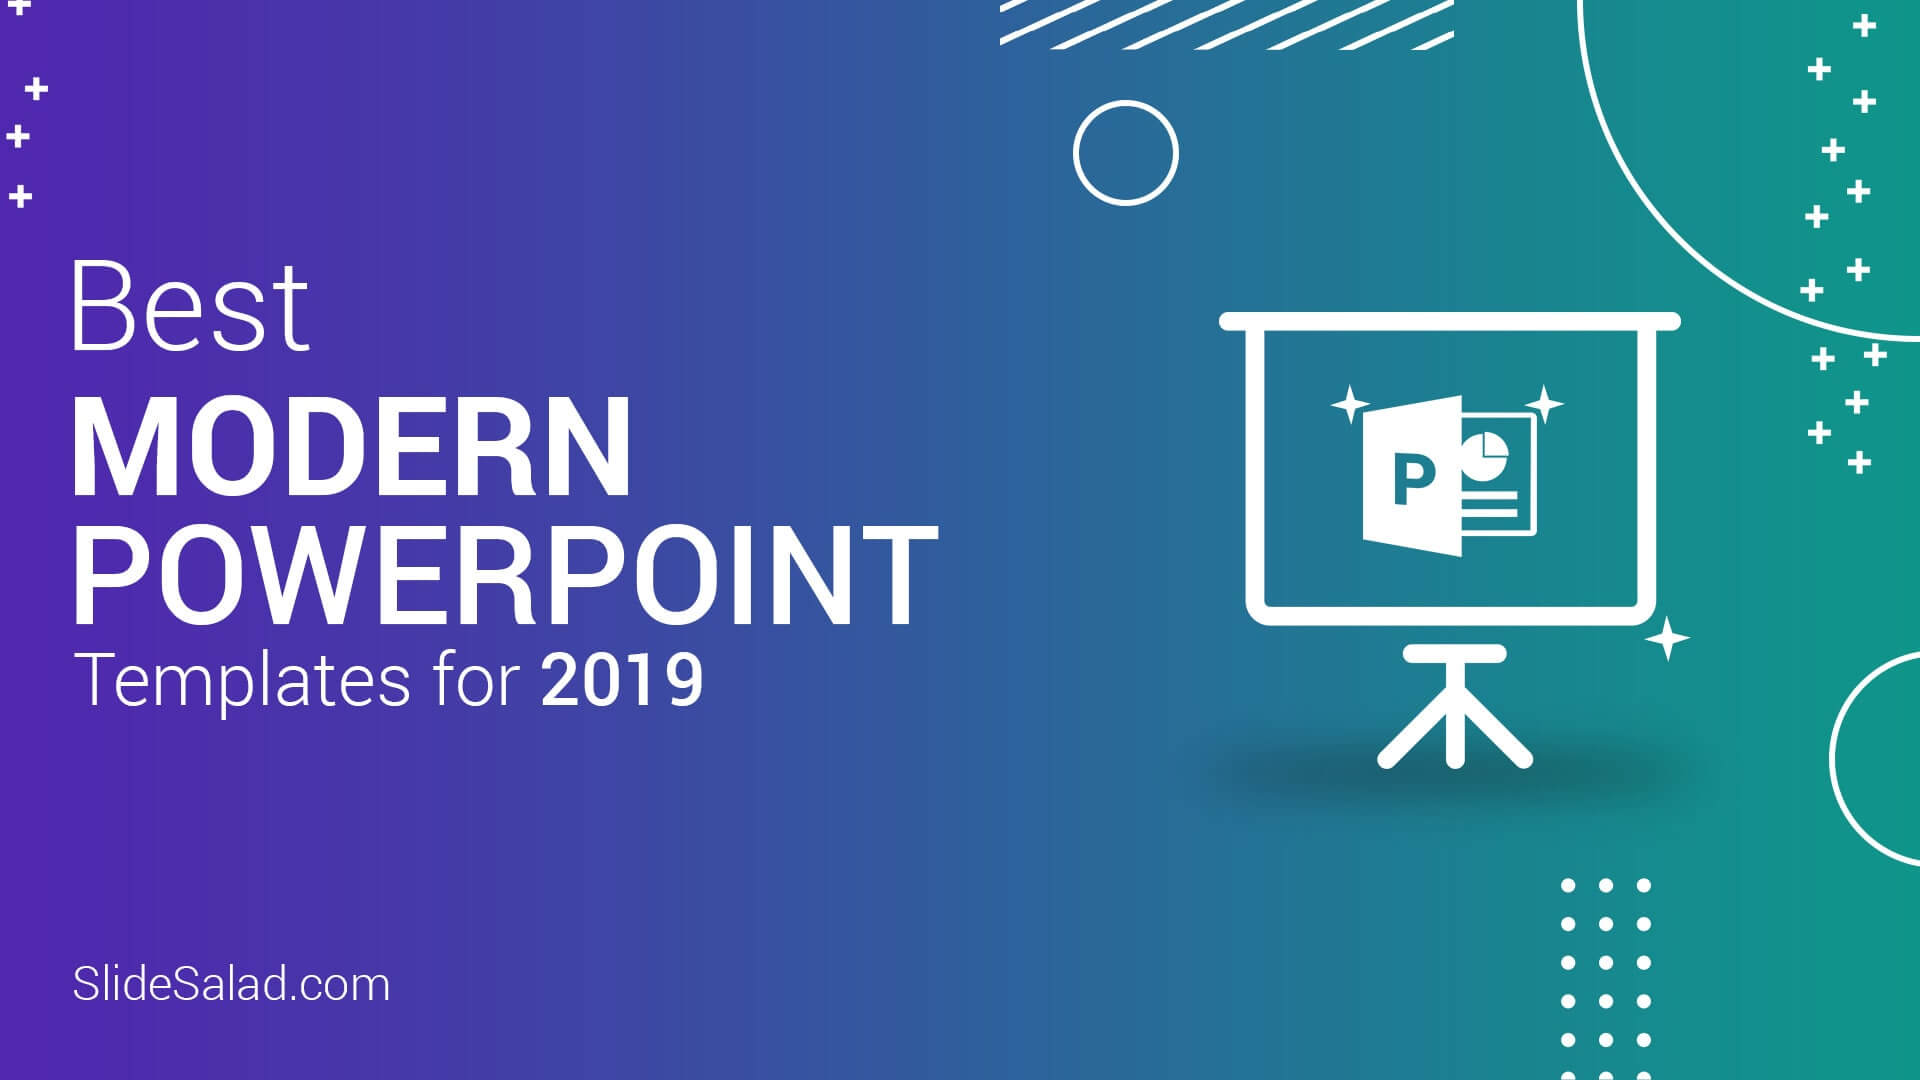 Best Modern Powerpoint Templates For 2019 - Slidesalad inside Powerpoint Templates Tourism